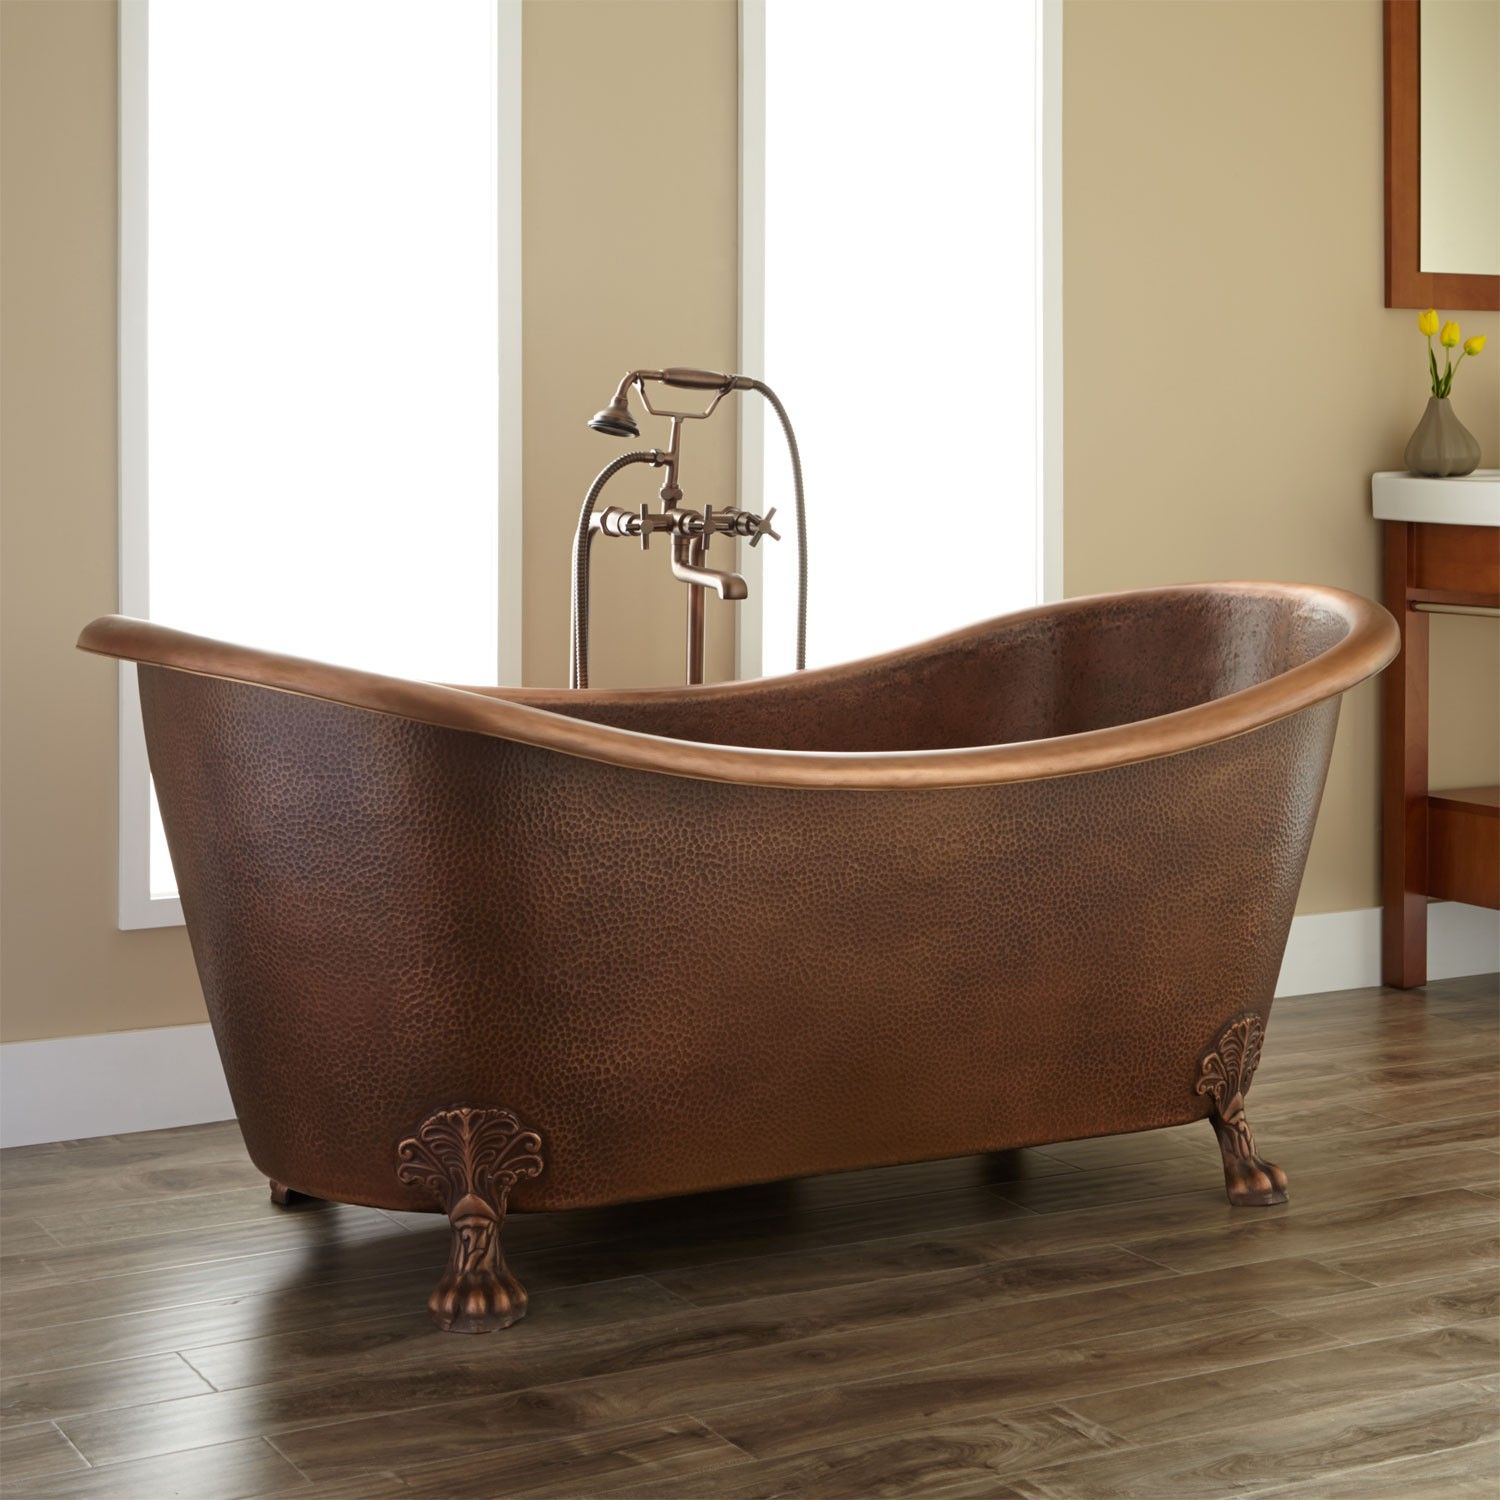 Clawfoot bathtub Isabella Copper Double Slipper Tub  Tubs Bathtubs and